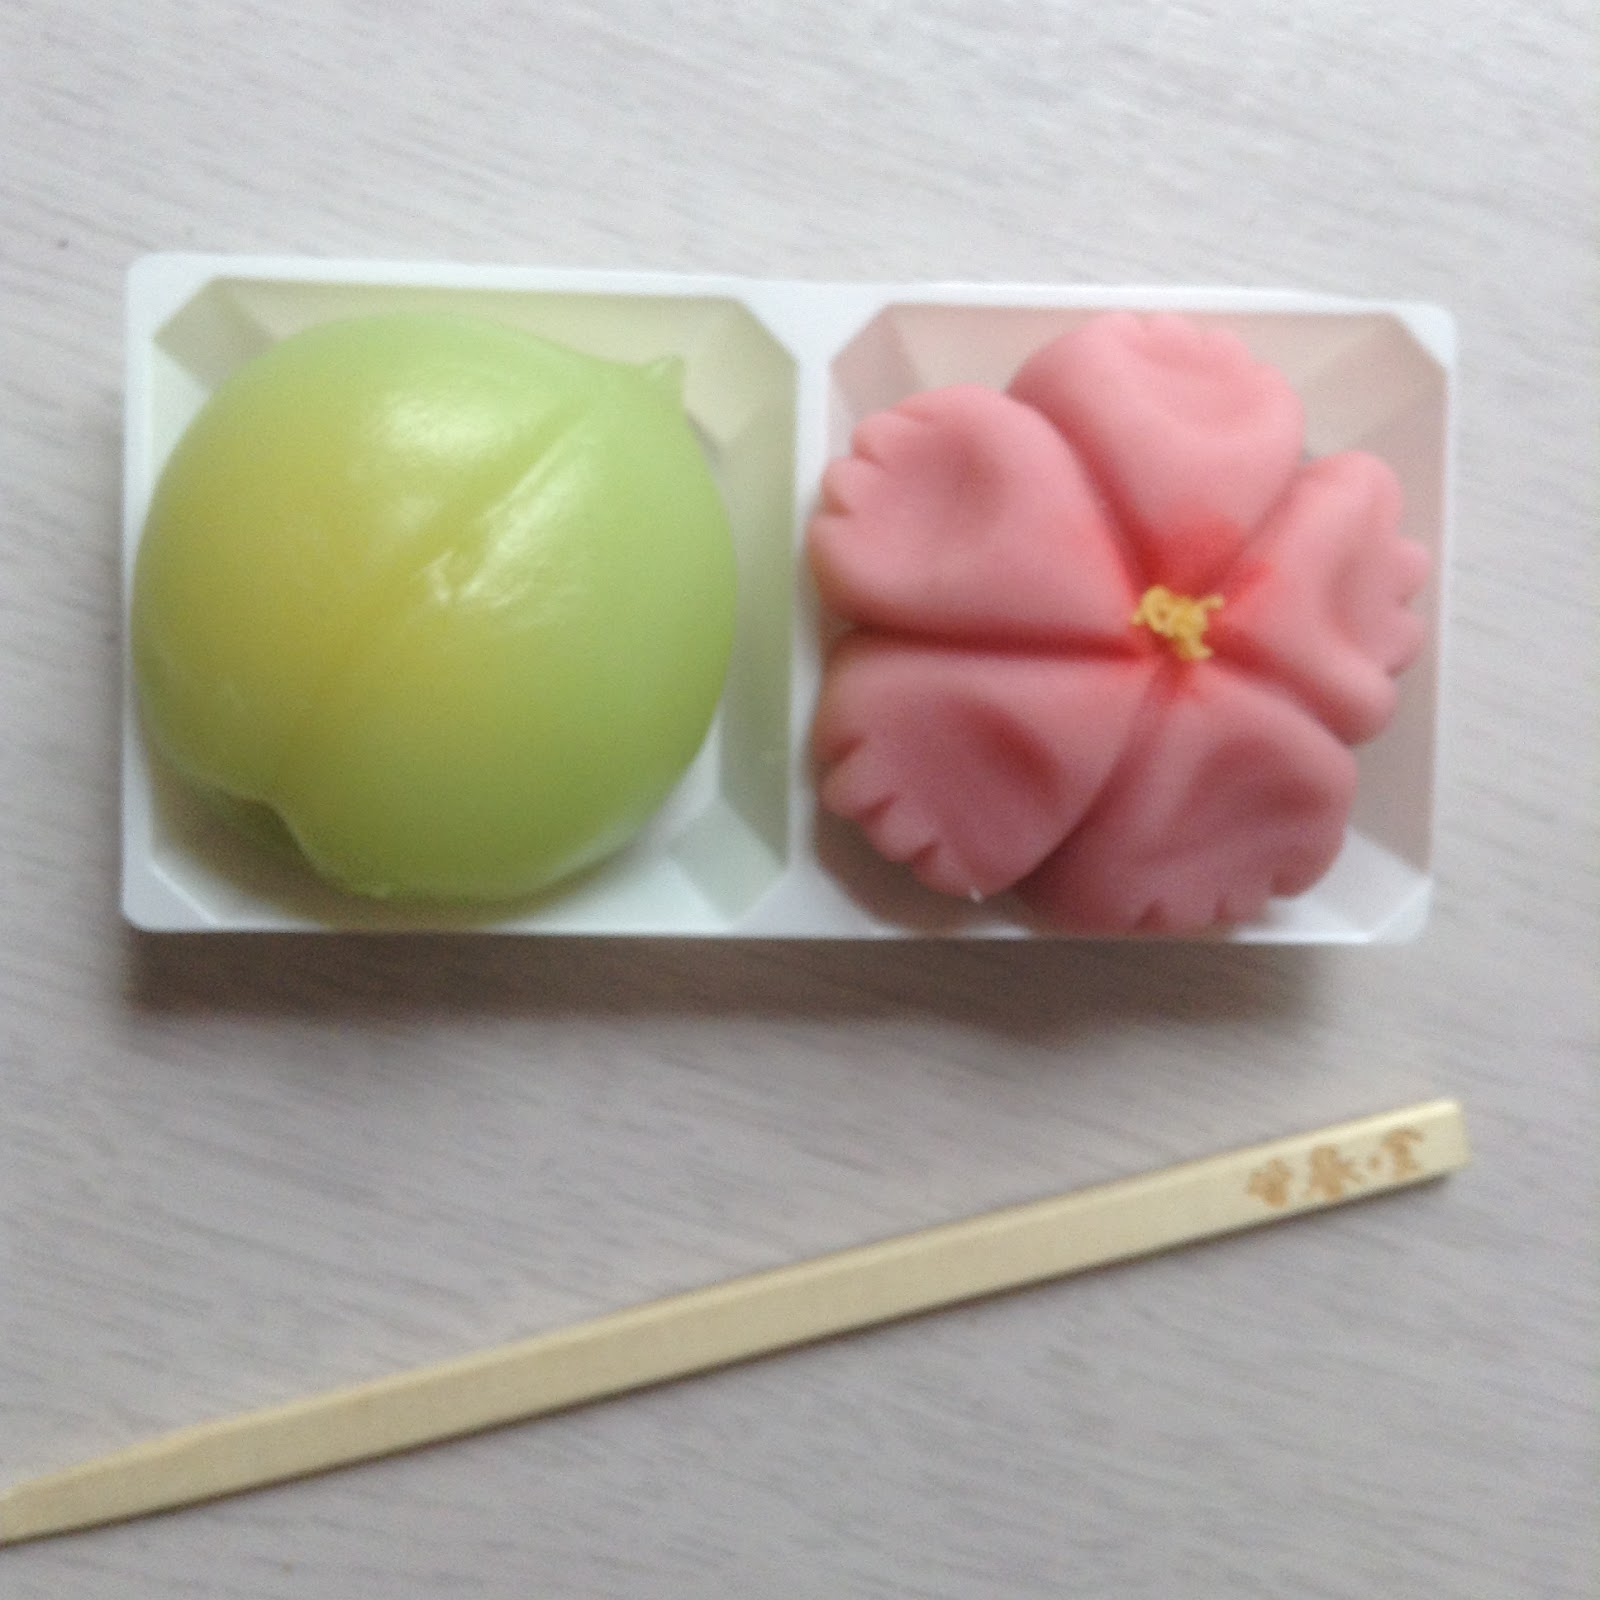 Wagashi making and visiting temples in Kyoto